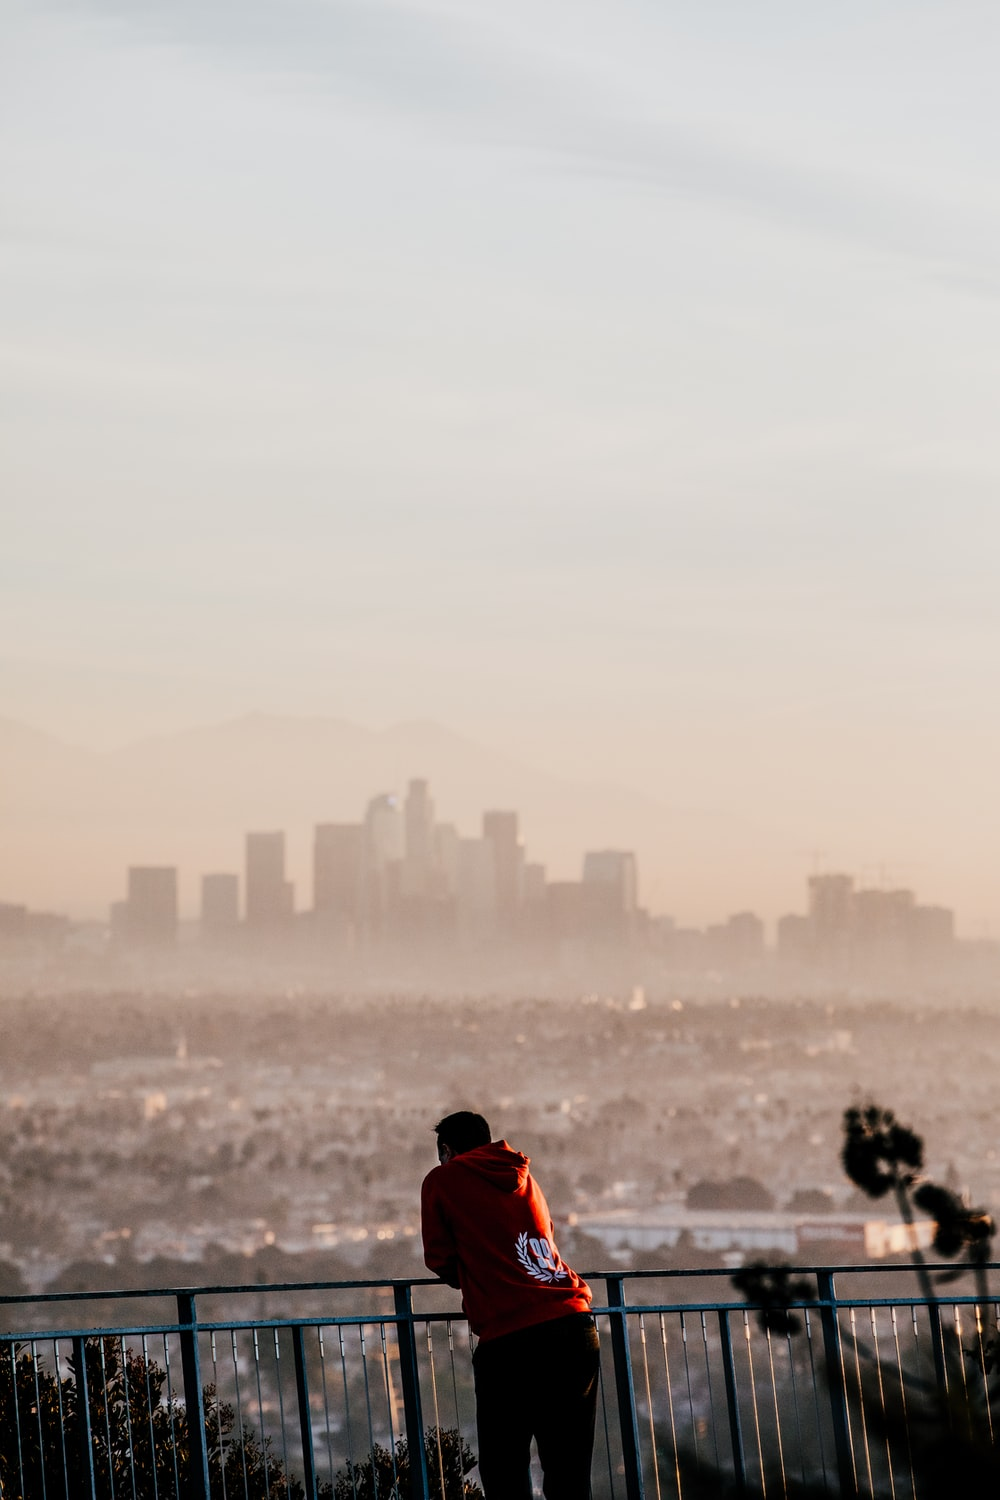 person in red hoodie leaning on rail facing city at daytime